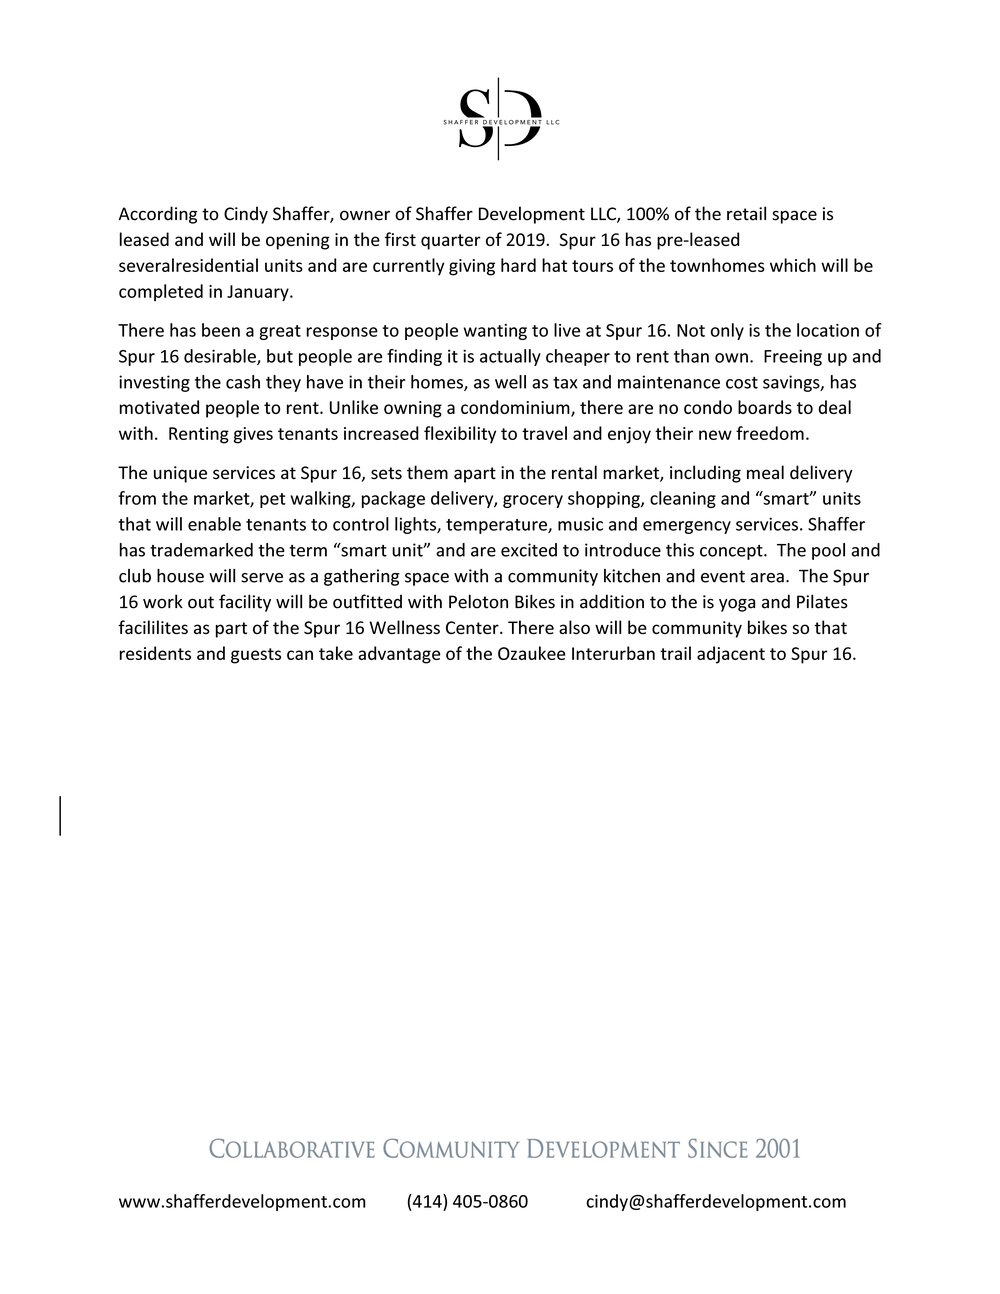 Club Pilates Mequon Spur 16 Press Release_Page_2.jpg